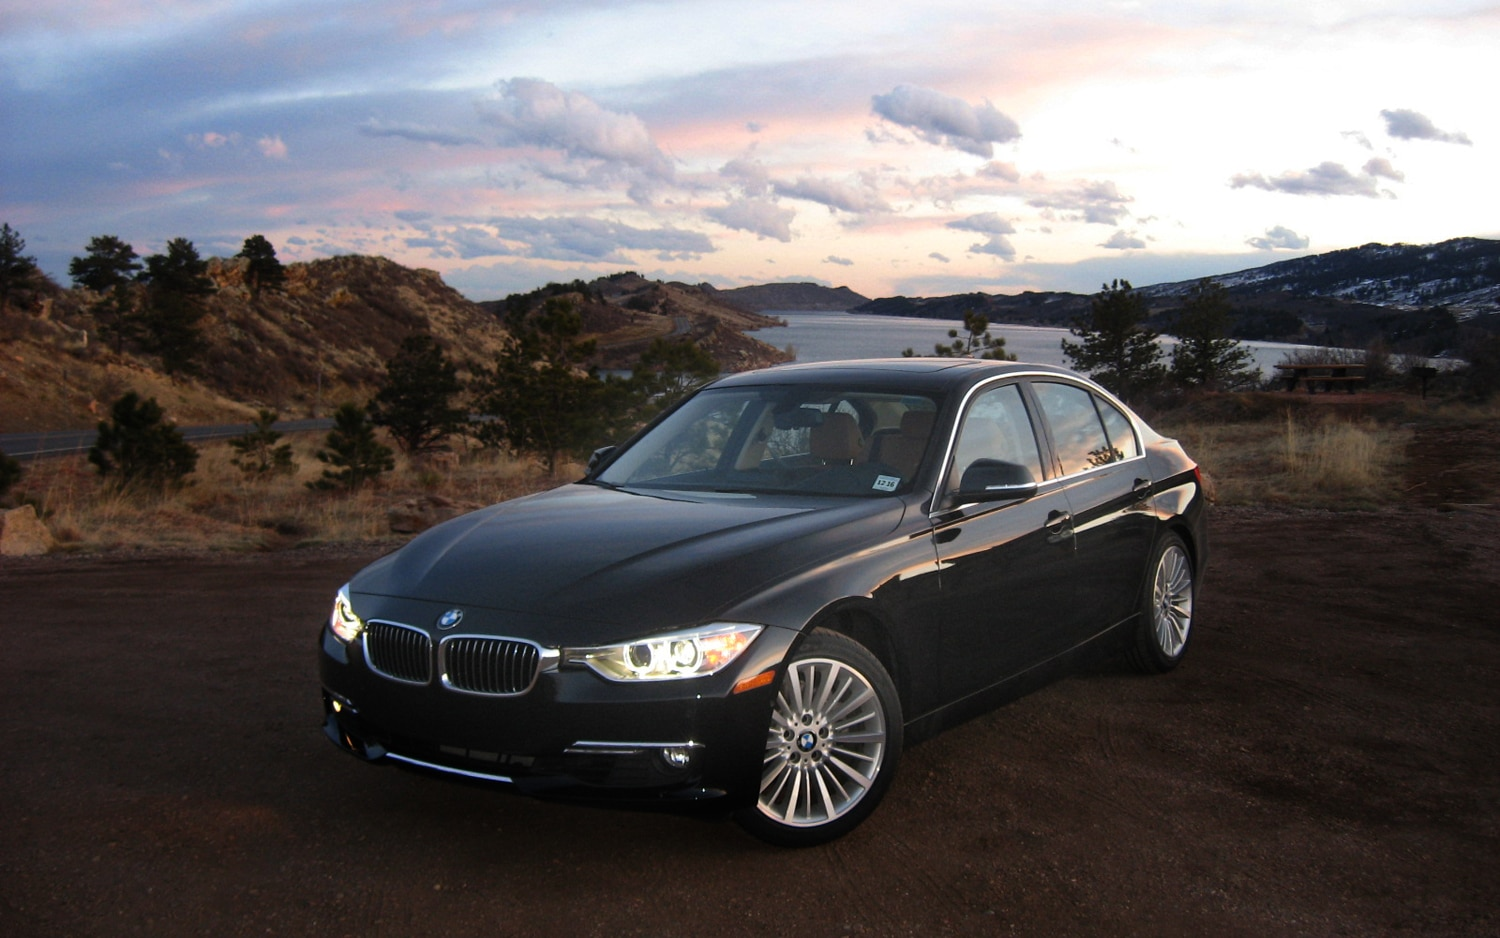 2012 BMW 328i Front Left View 31